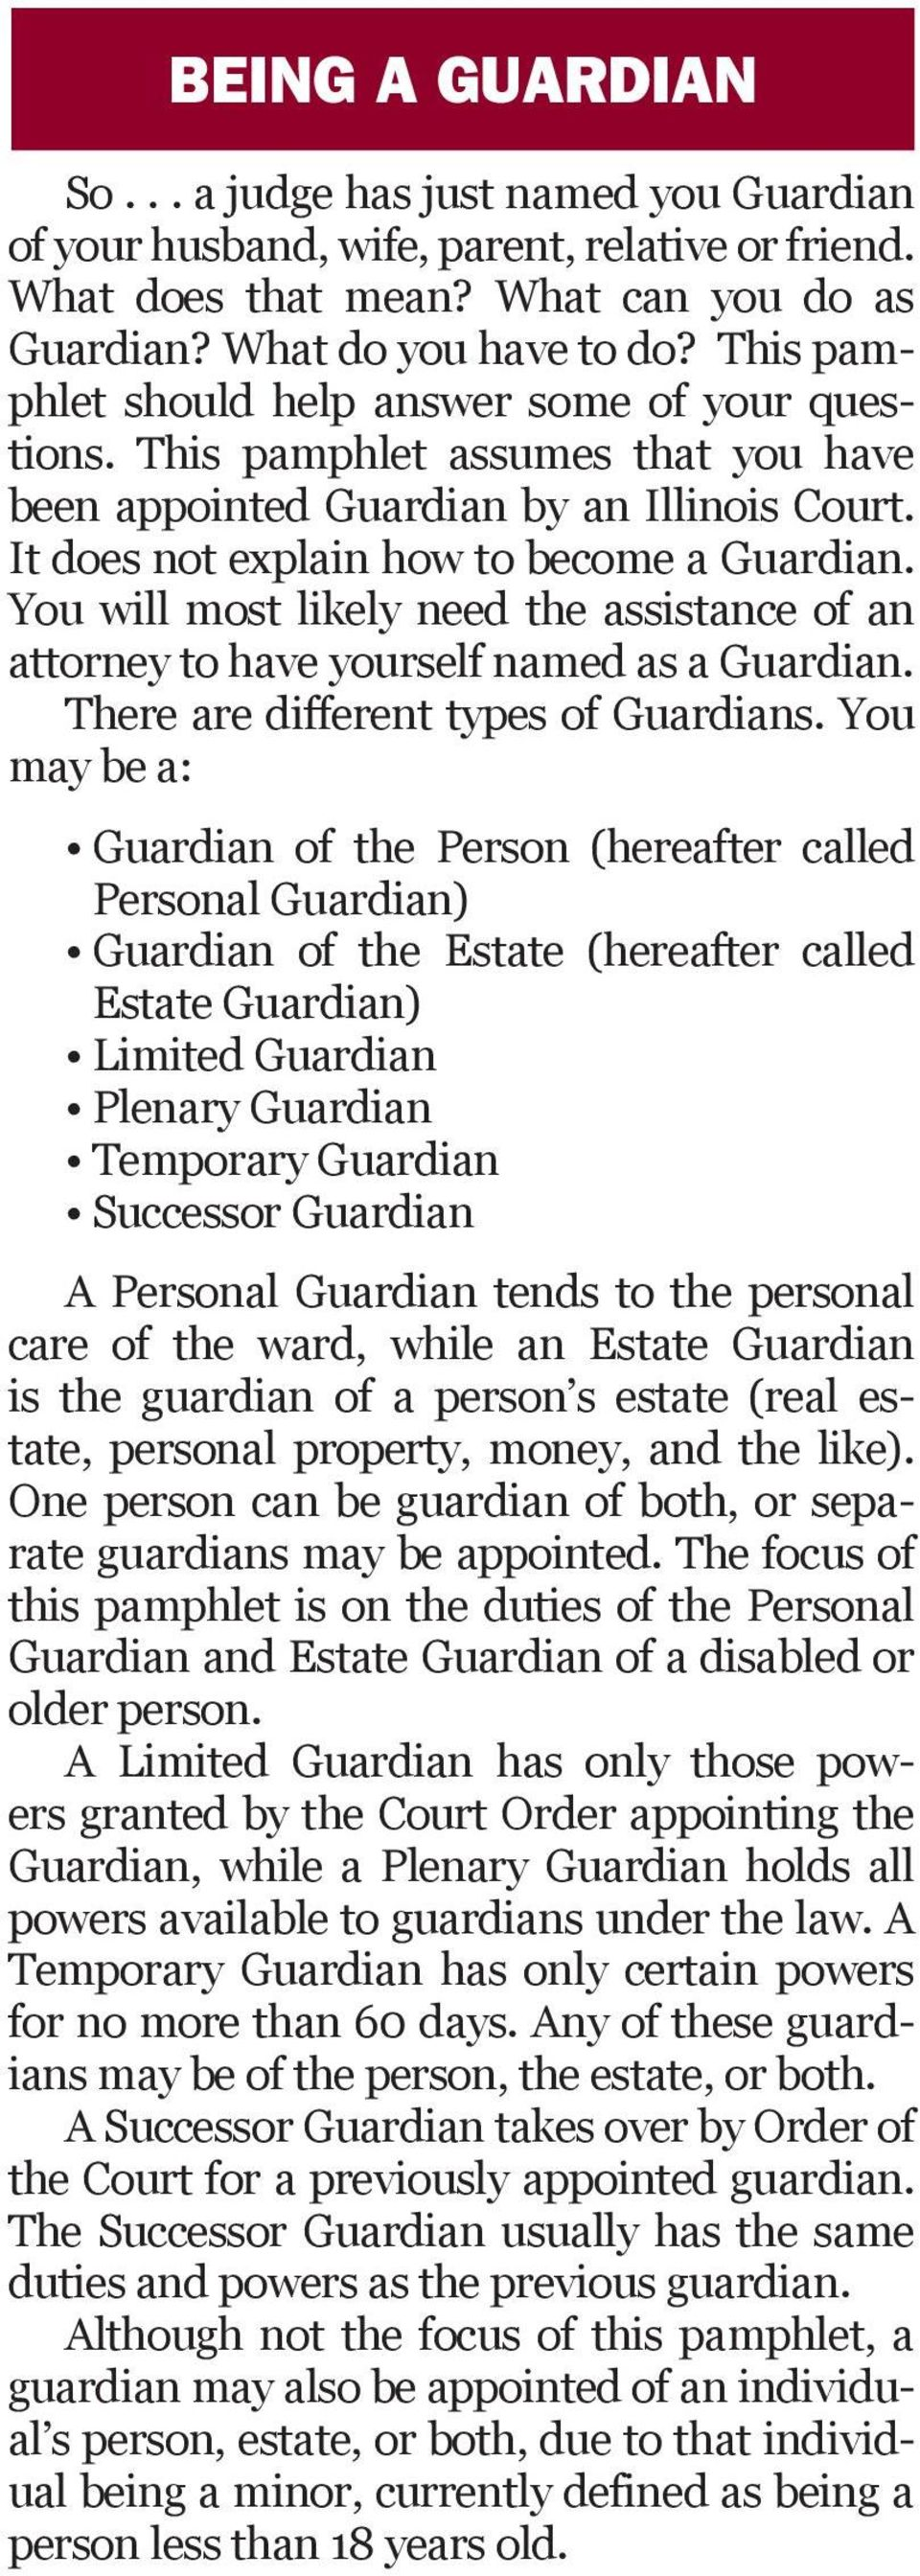 You will most likely need the assistance of an attorney to have yourself named as a Guardian. There are different types of Guardians.